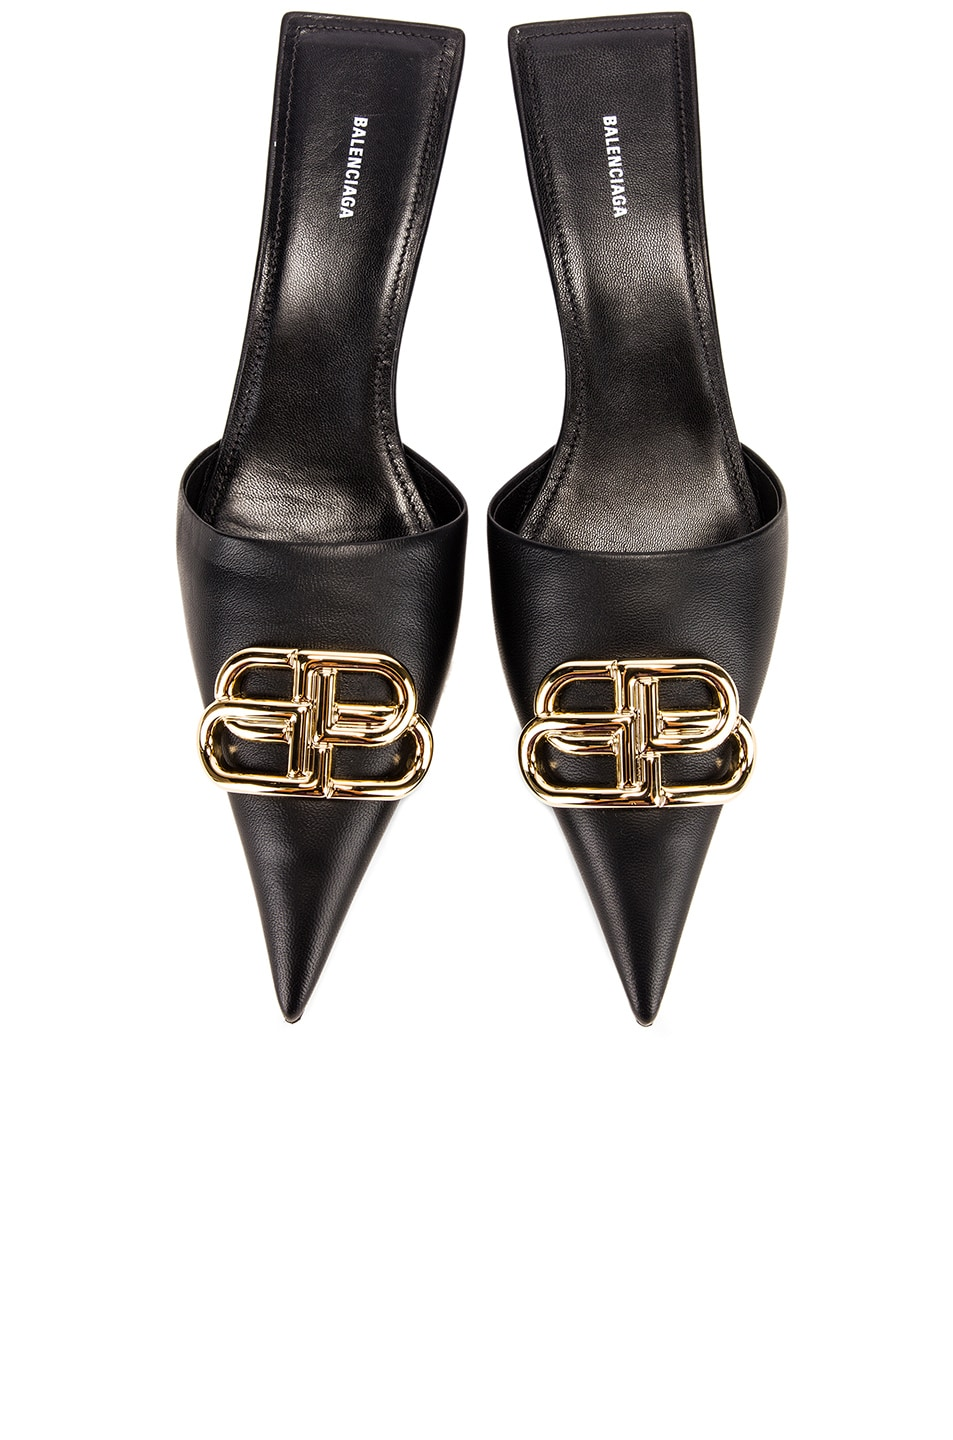 Image 1 of Balenciaga Square Knife BB Kitten Heels in Black & Gold